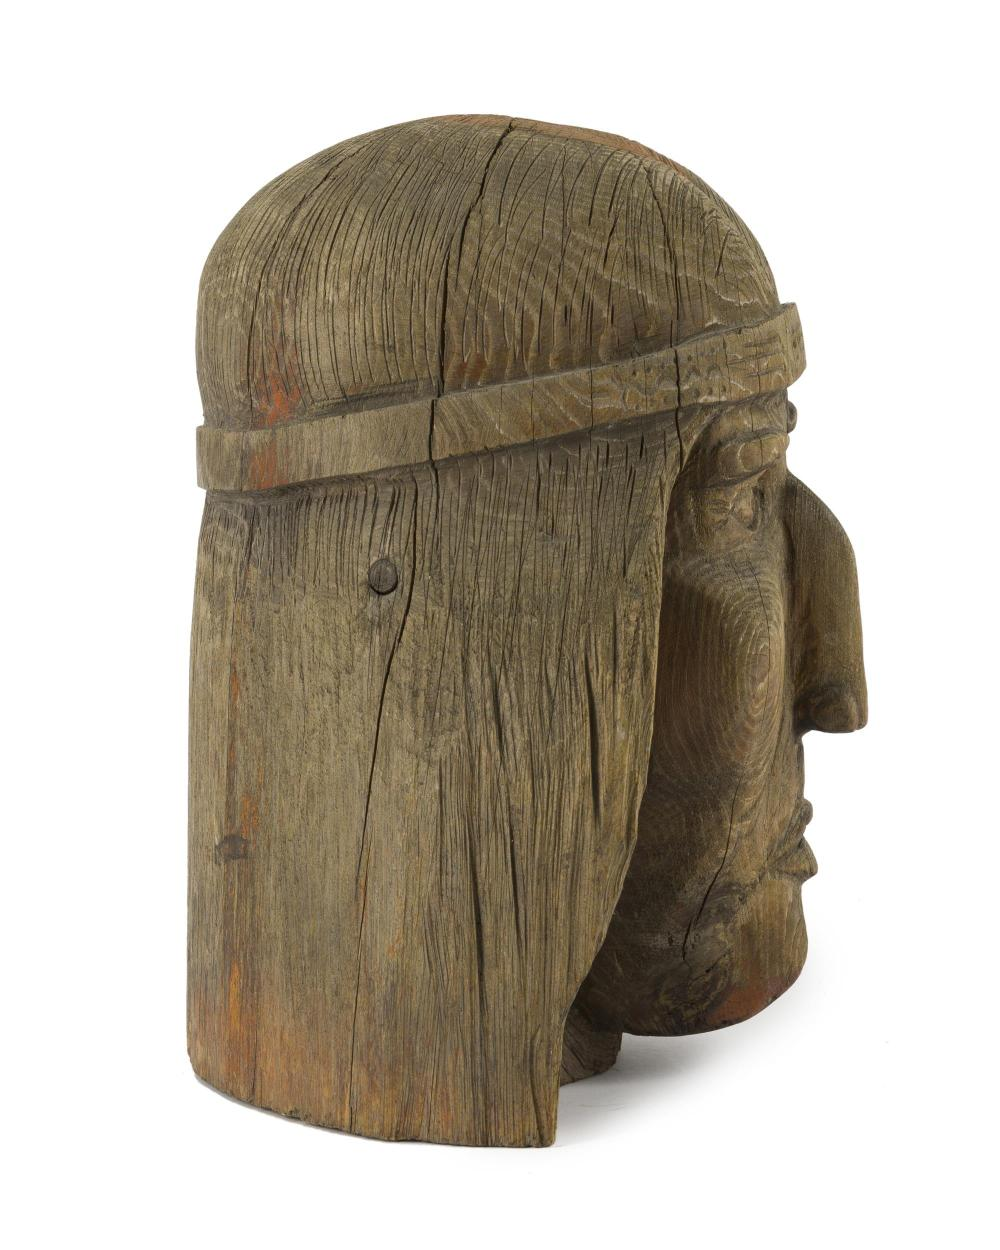 A carved wooden American Indian bust